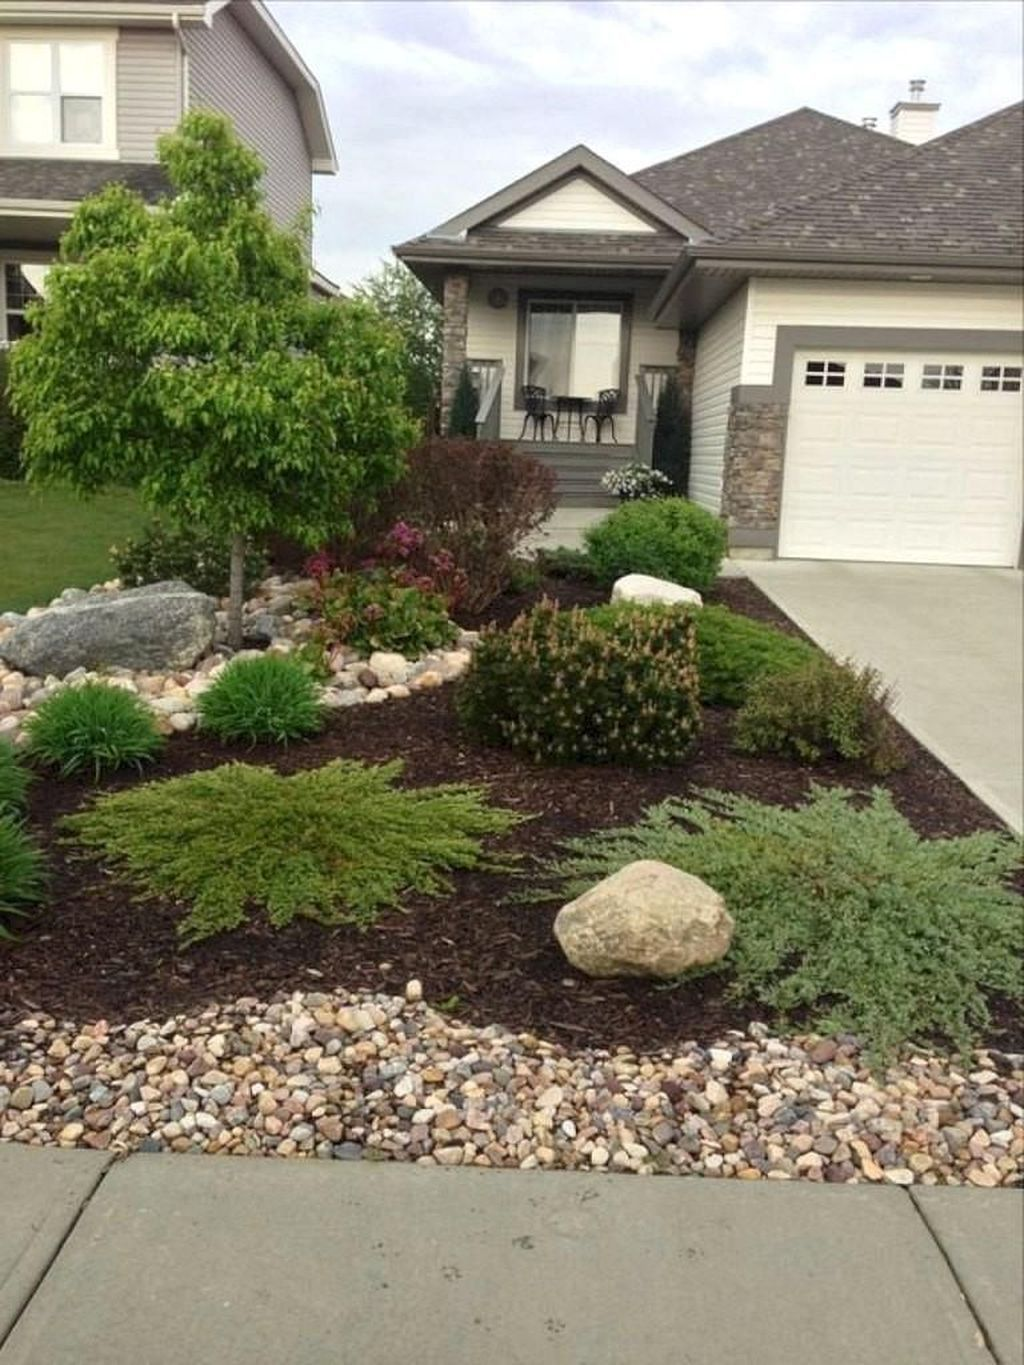 50 Cute Front Yard Courtyard Landscaping Ideas | Small ... on Luxury Front Yard Landscape id=44103